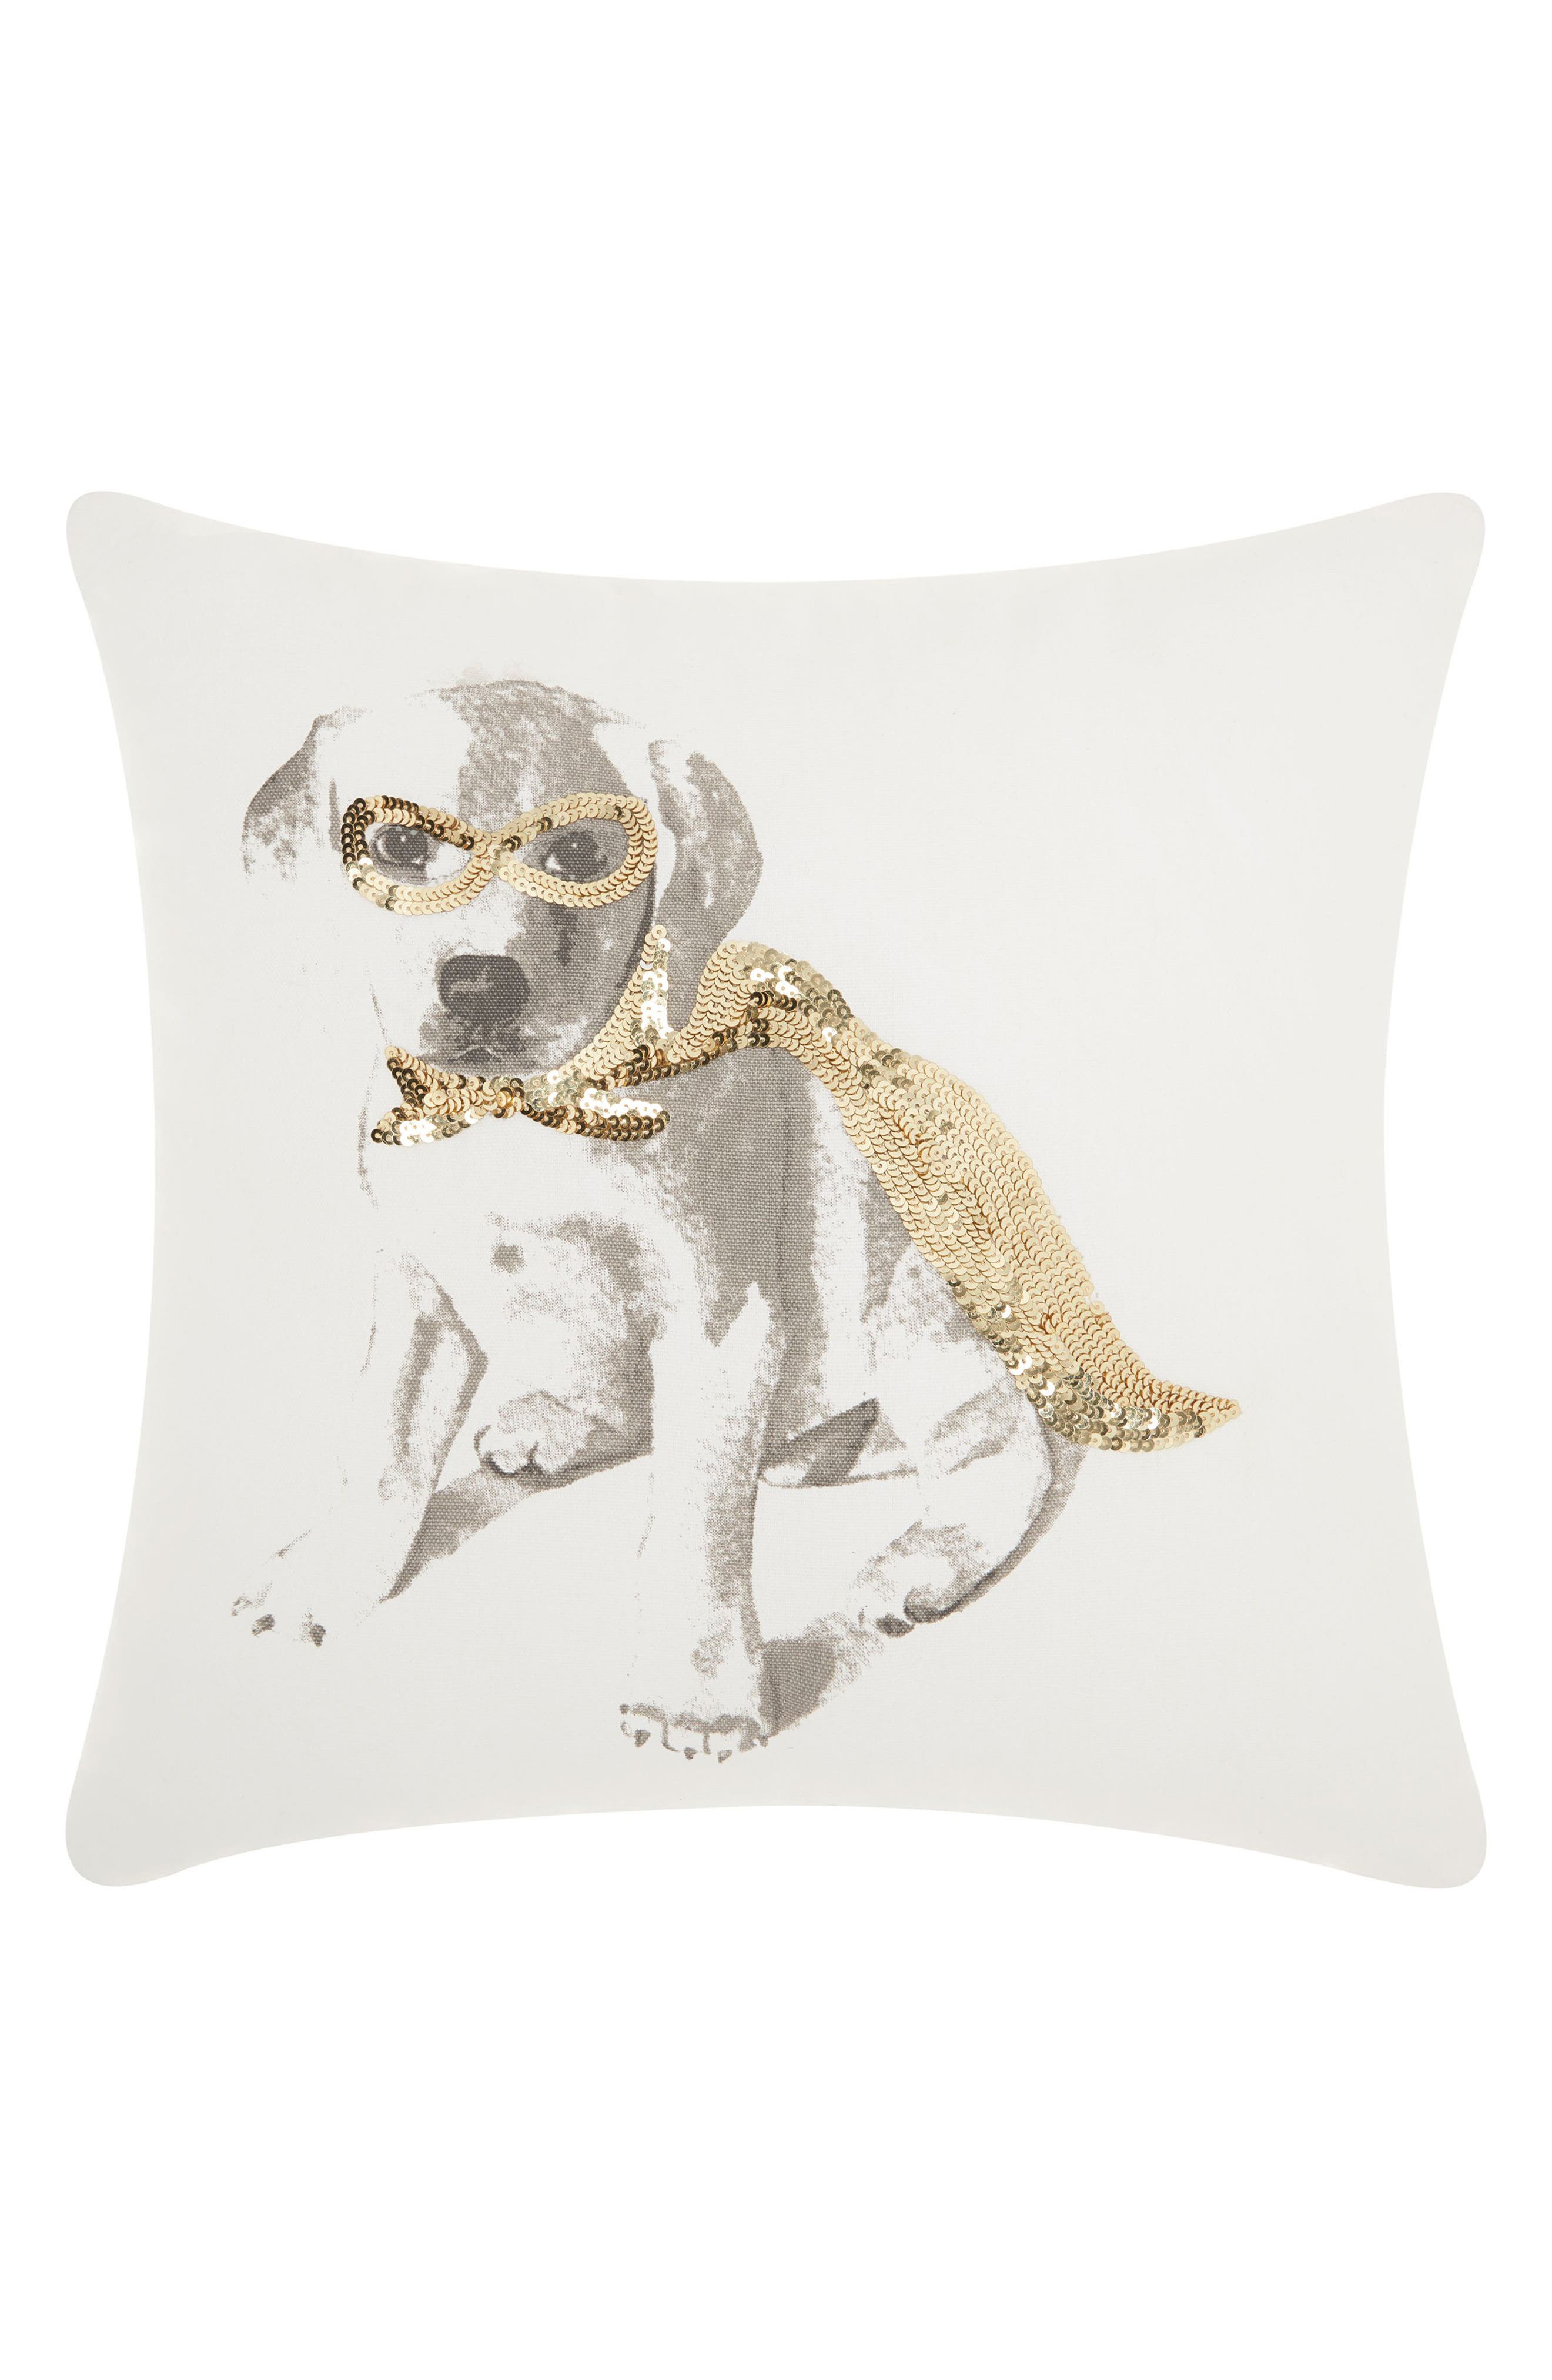 Alternate Image 1 Selected - Mina Victory Sequin Super Dog Accent Pillow